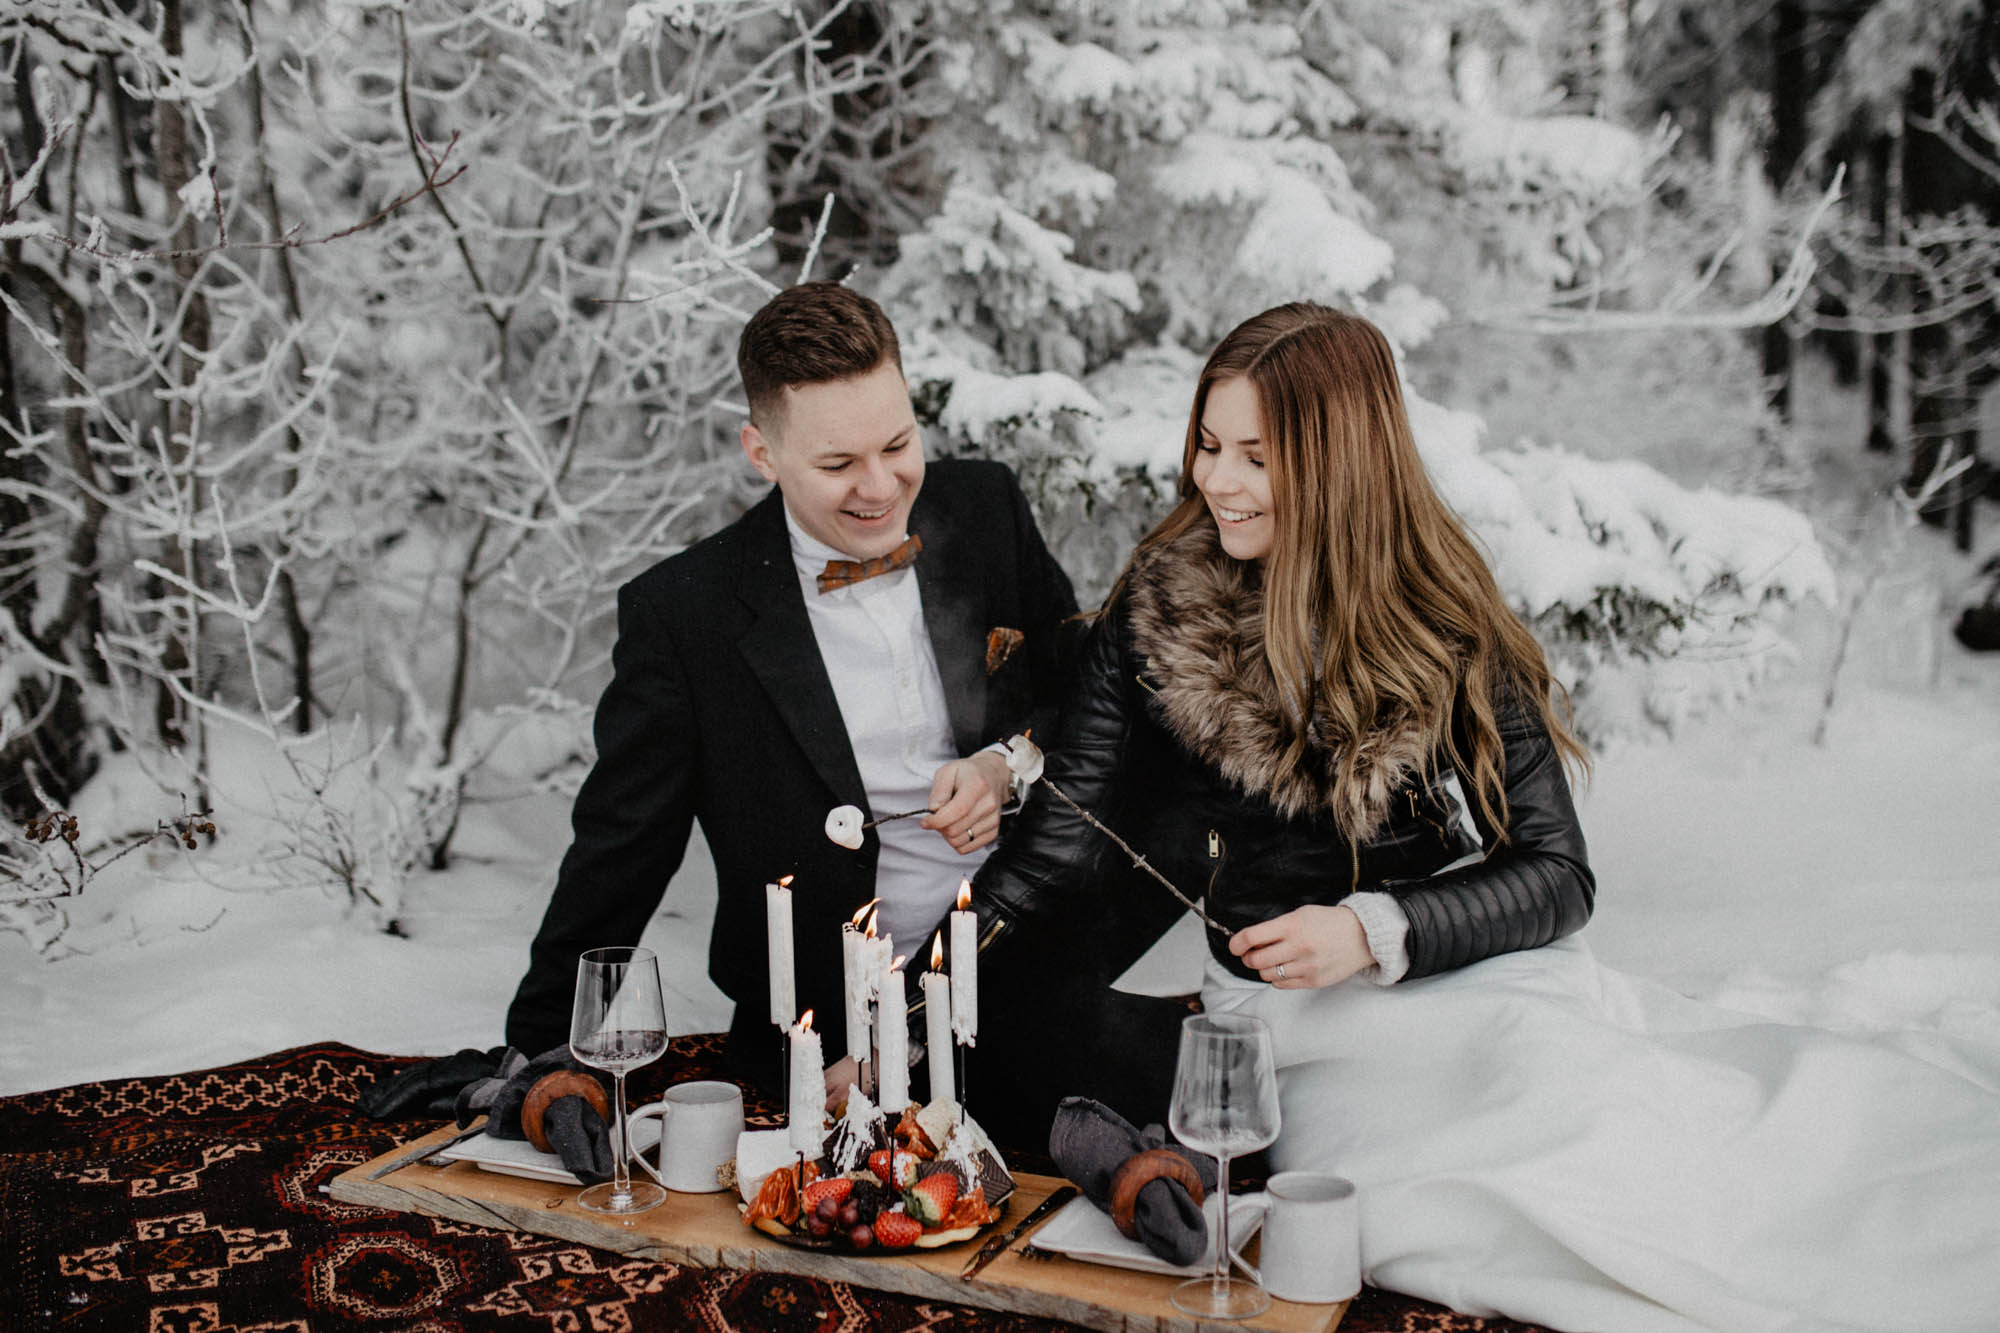 ashley_schulman_photography-winter_wedding_tampere-53.jpg